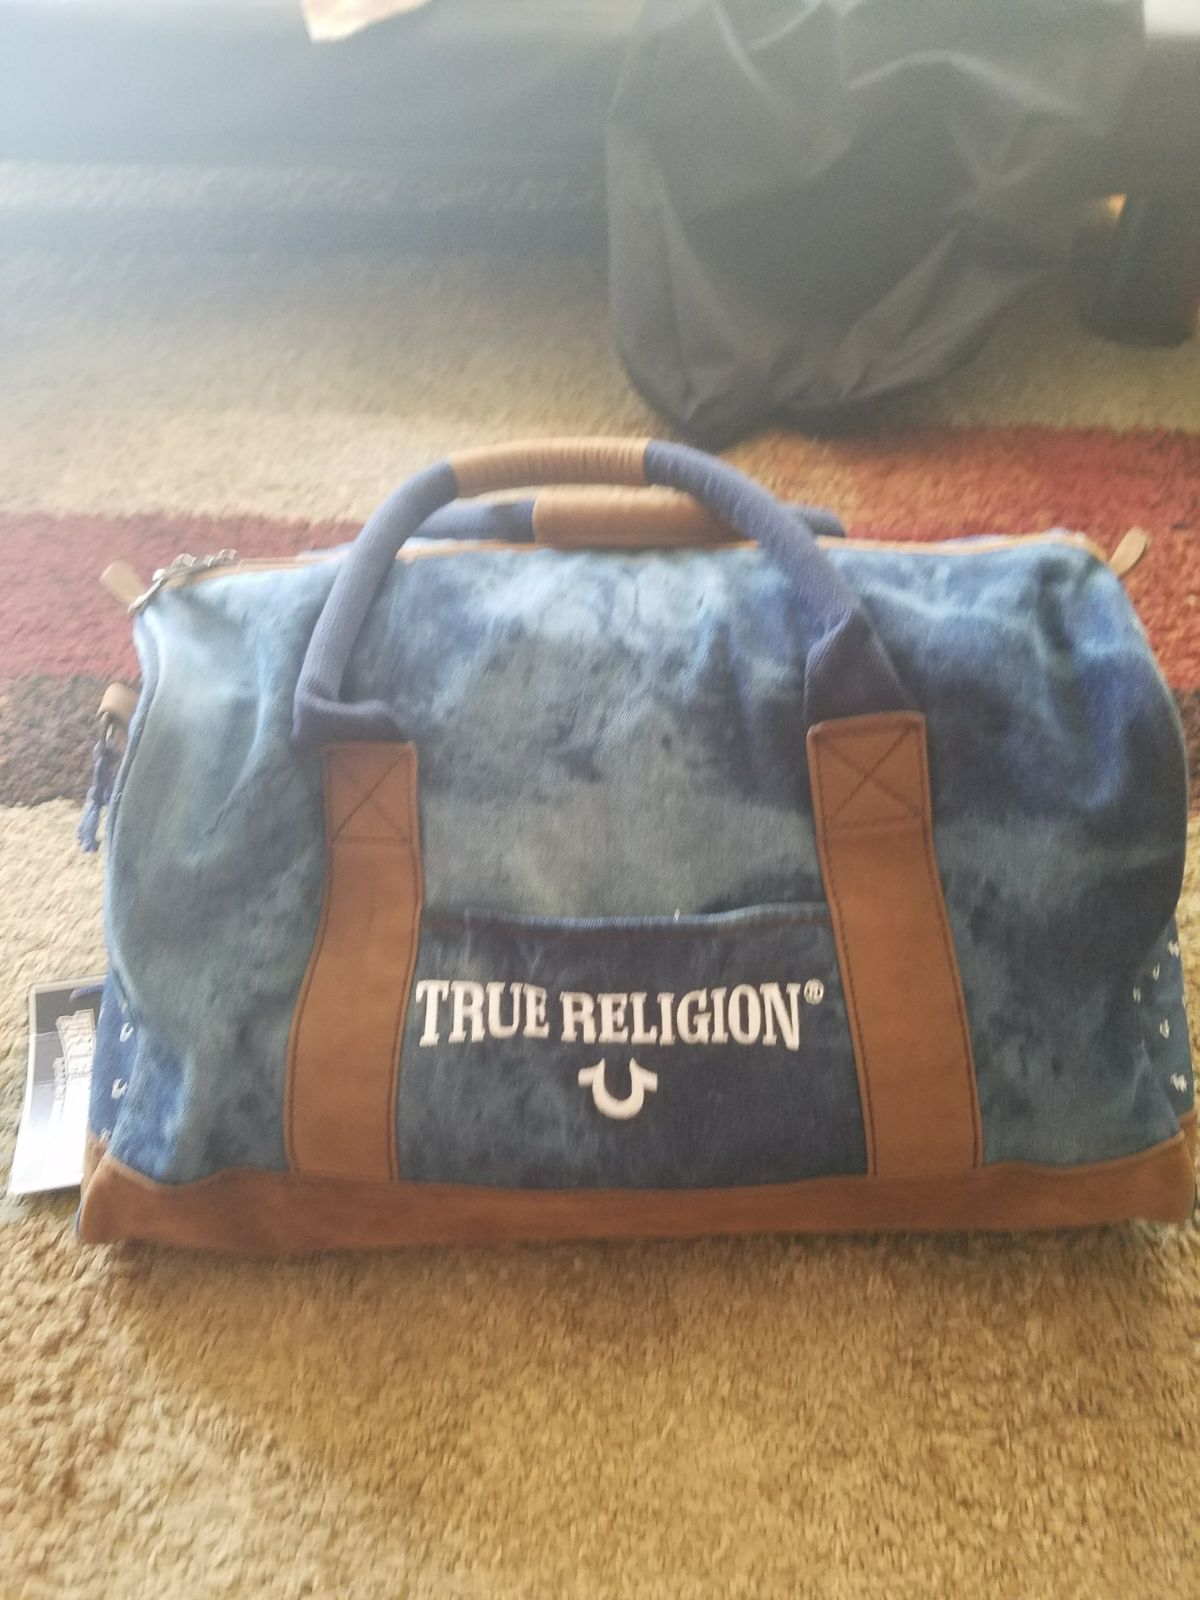 True religion duffle bag